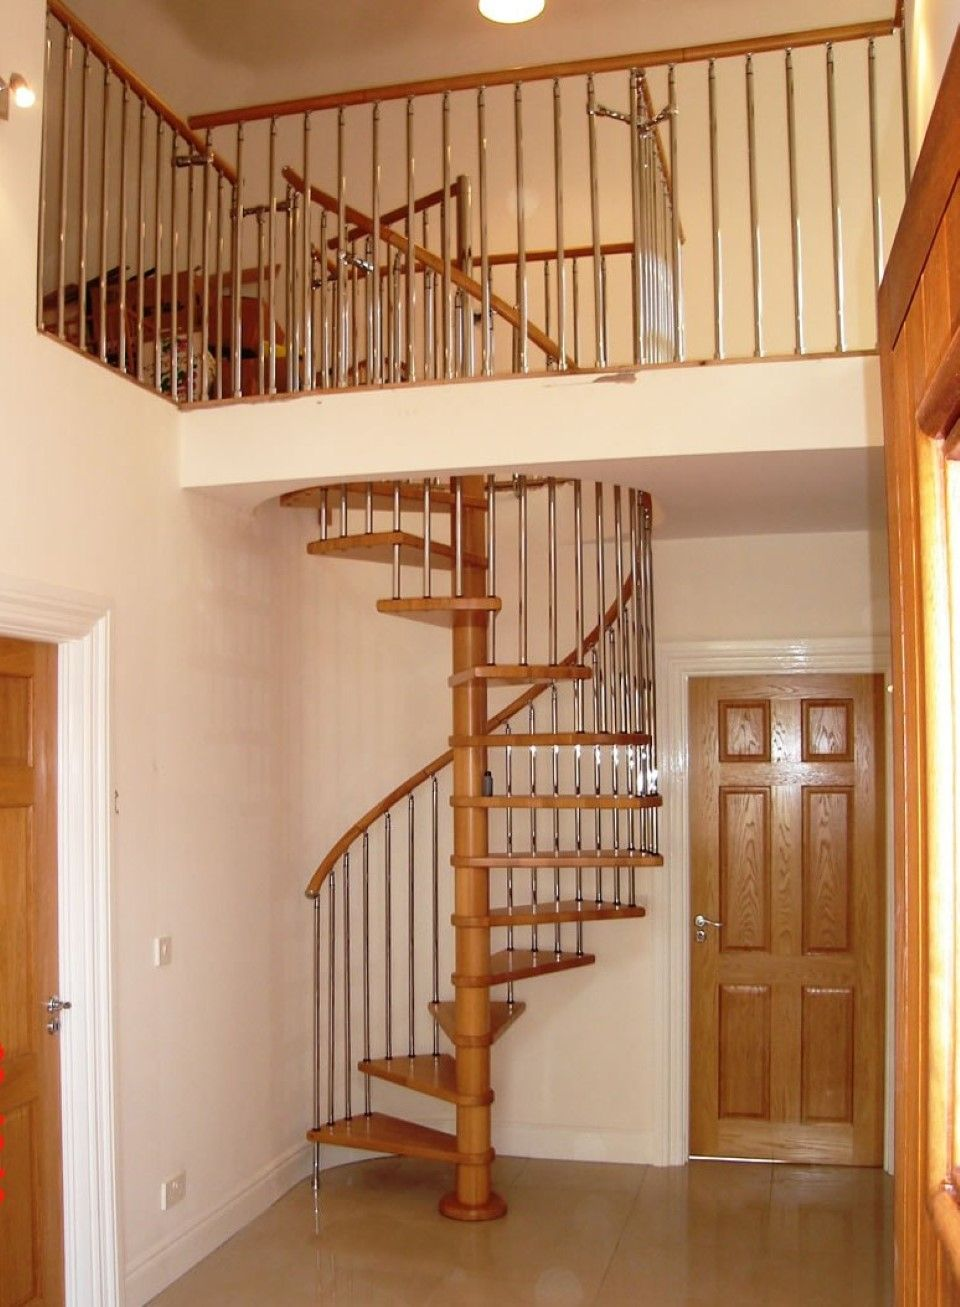 Natural Wood Interior Door Feat Simple Spiral Staircase Design And Neutral Wall Idea Spiral Staircase Plan Spiral Staircase Kits Staircase Design